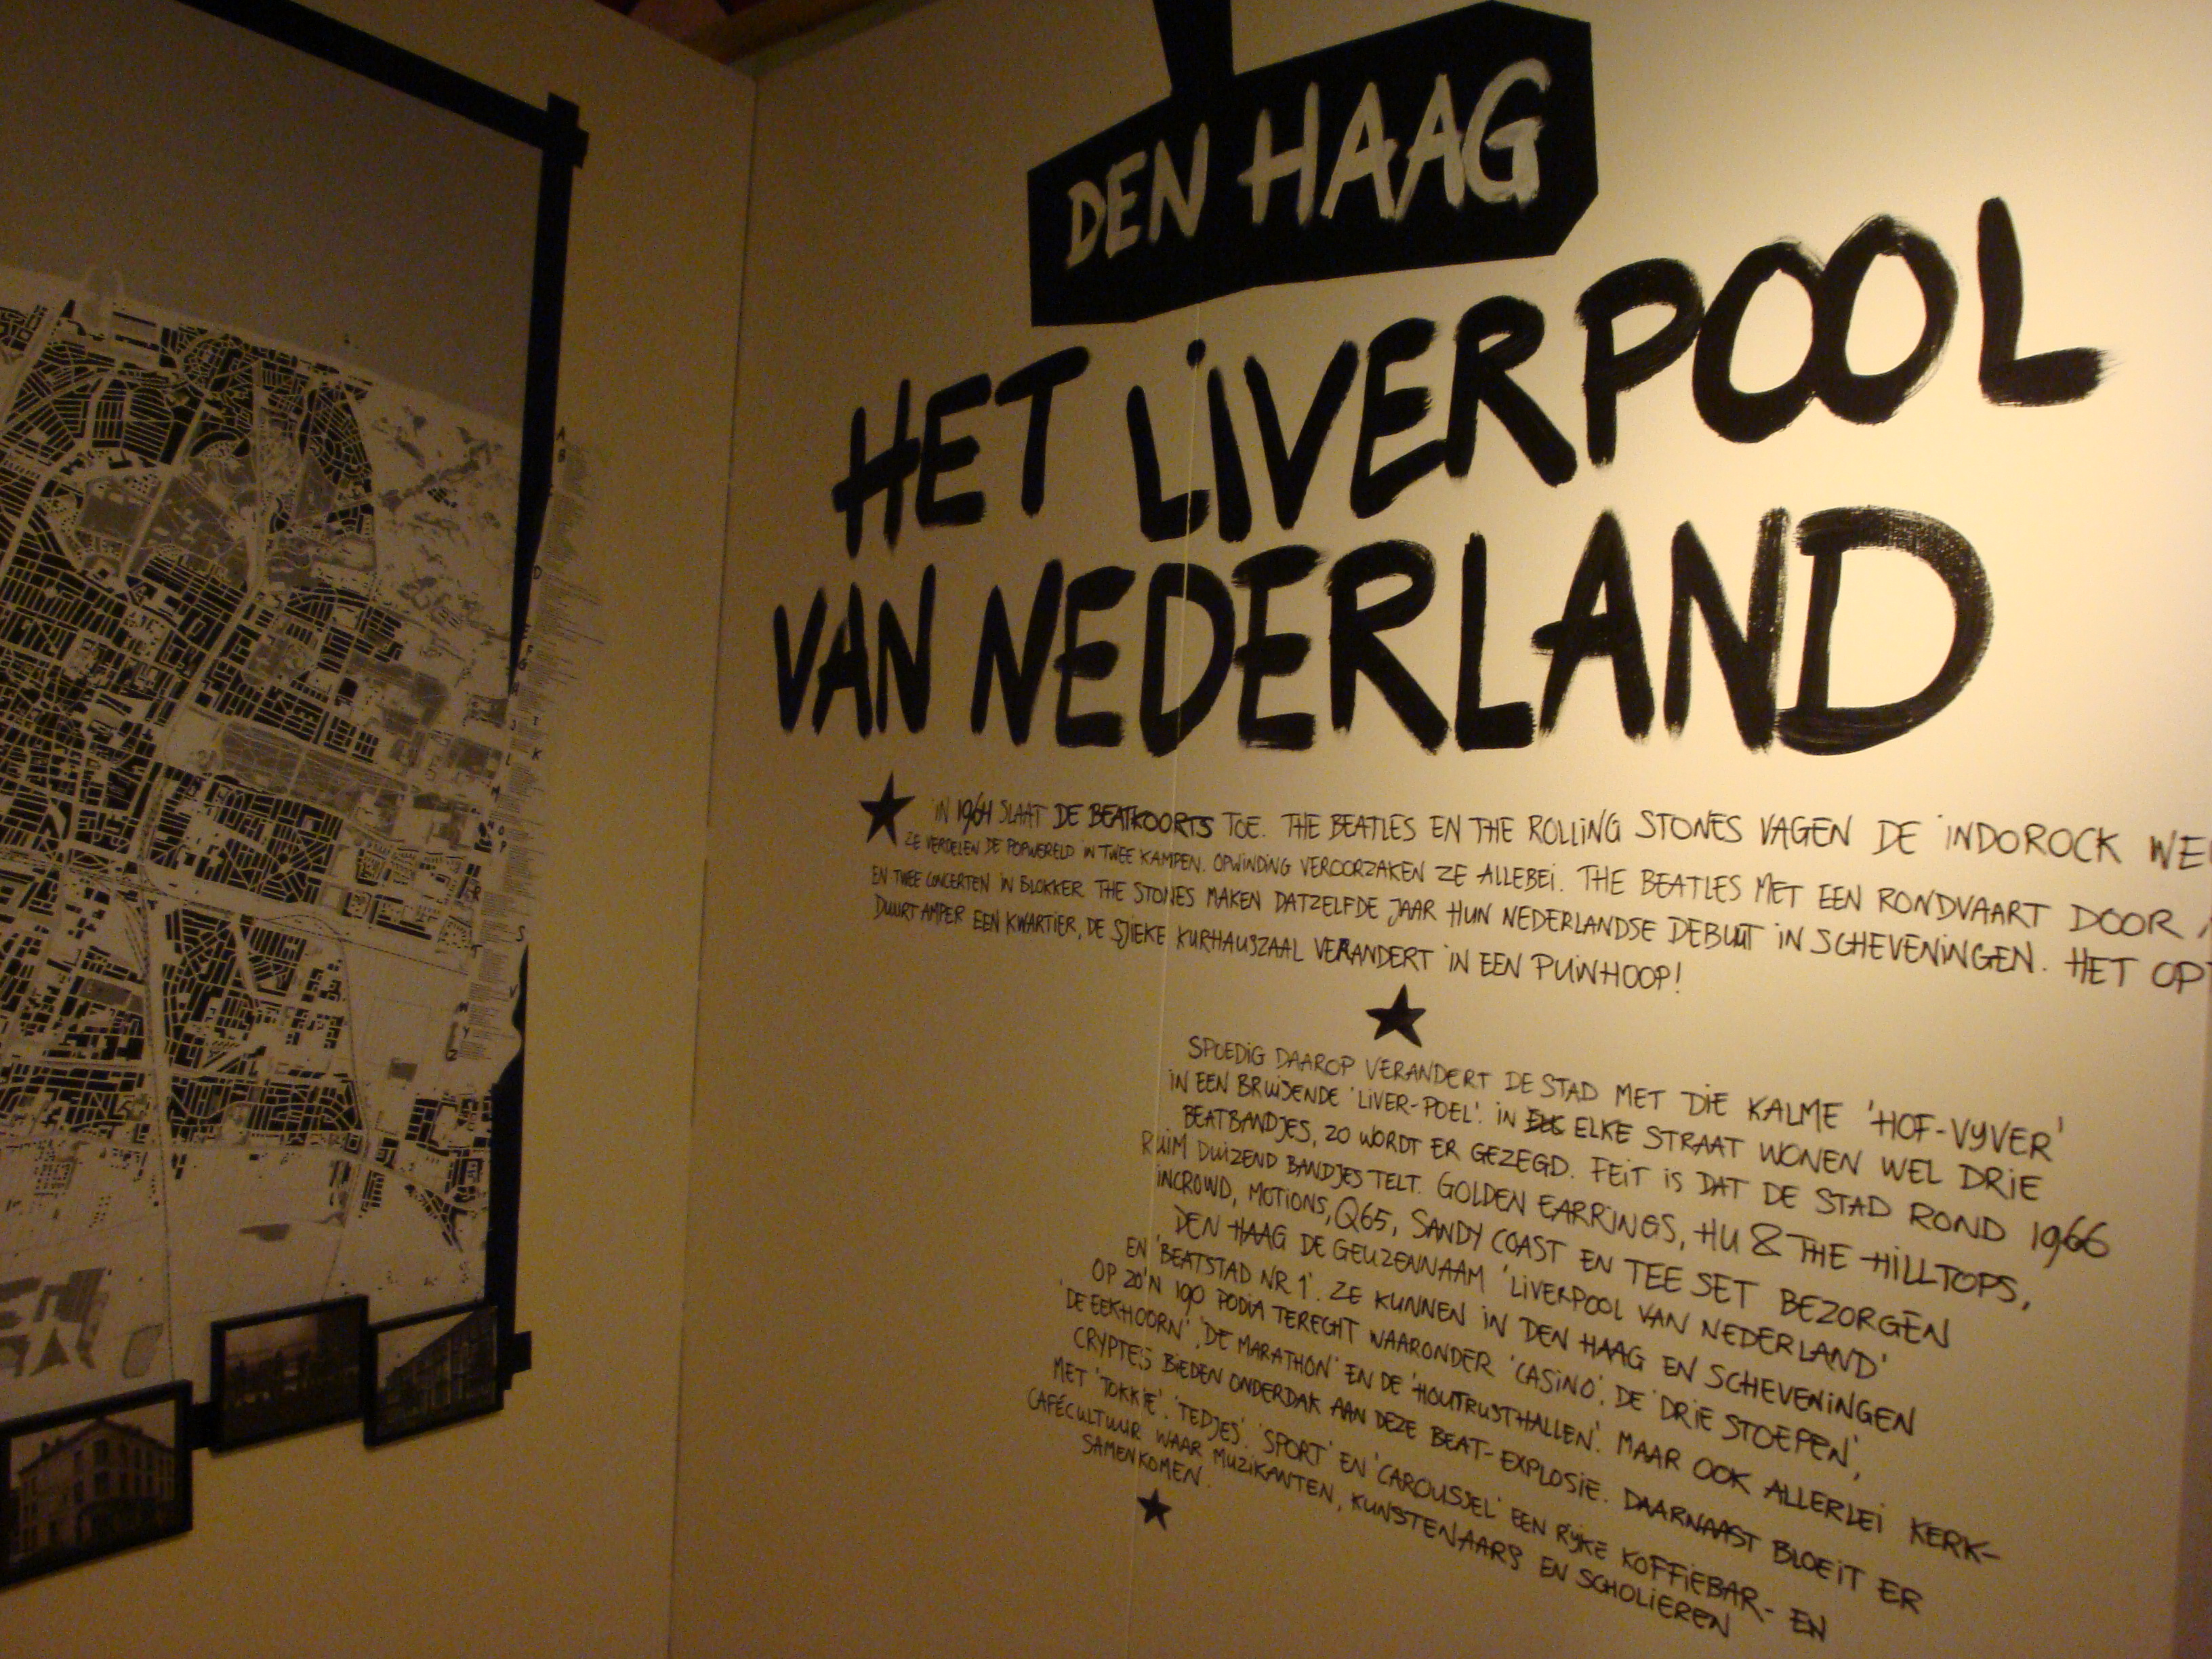 Golden Earring Back Home exhibition at Haags Historisch Museum, the Netherlands